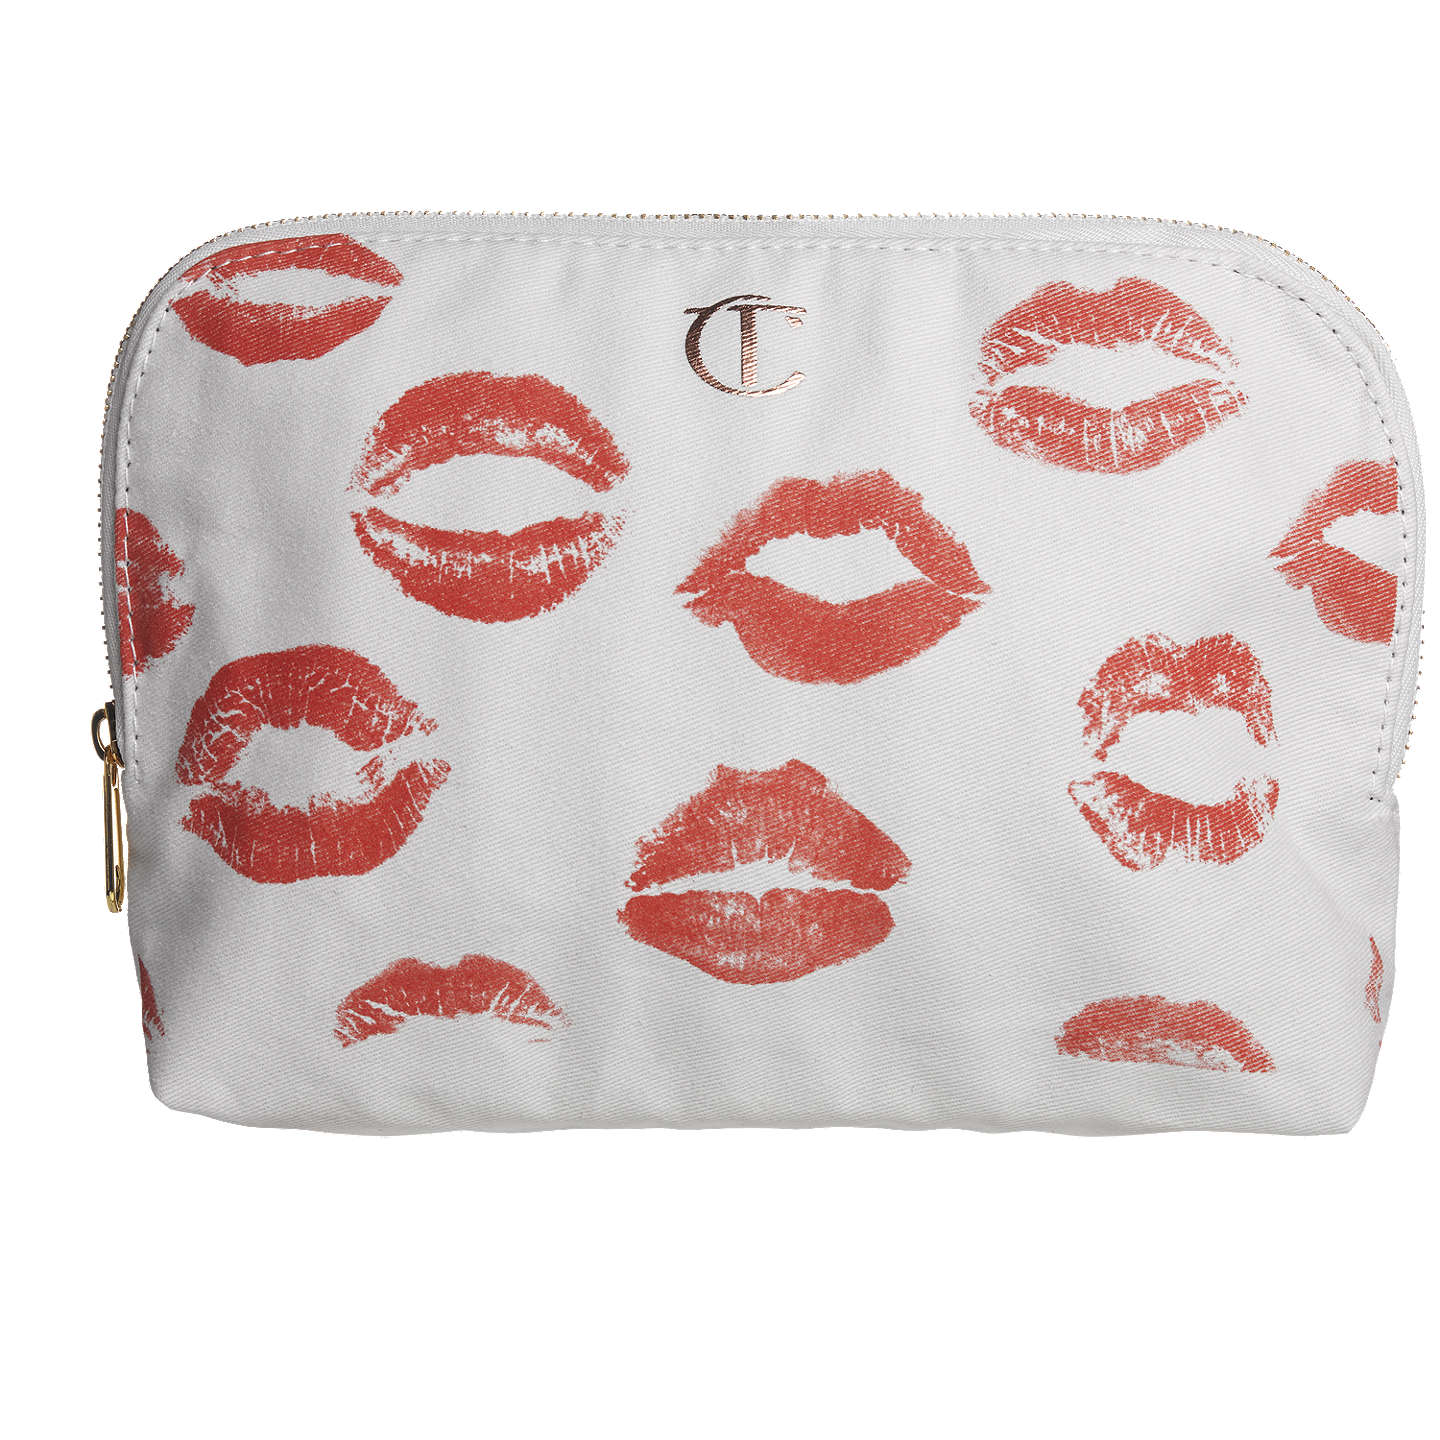 BuyCharlotte Tilbury Makeup Bag 1st Edition Online at johnlewis.com